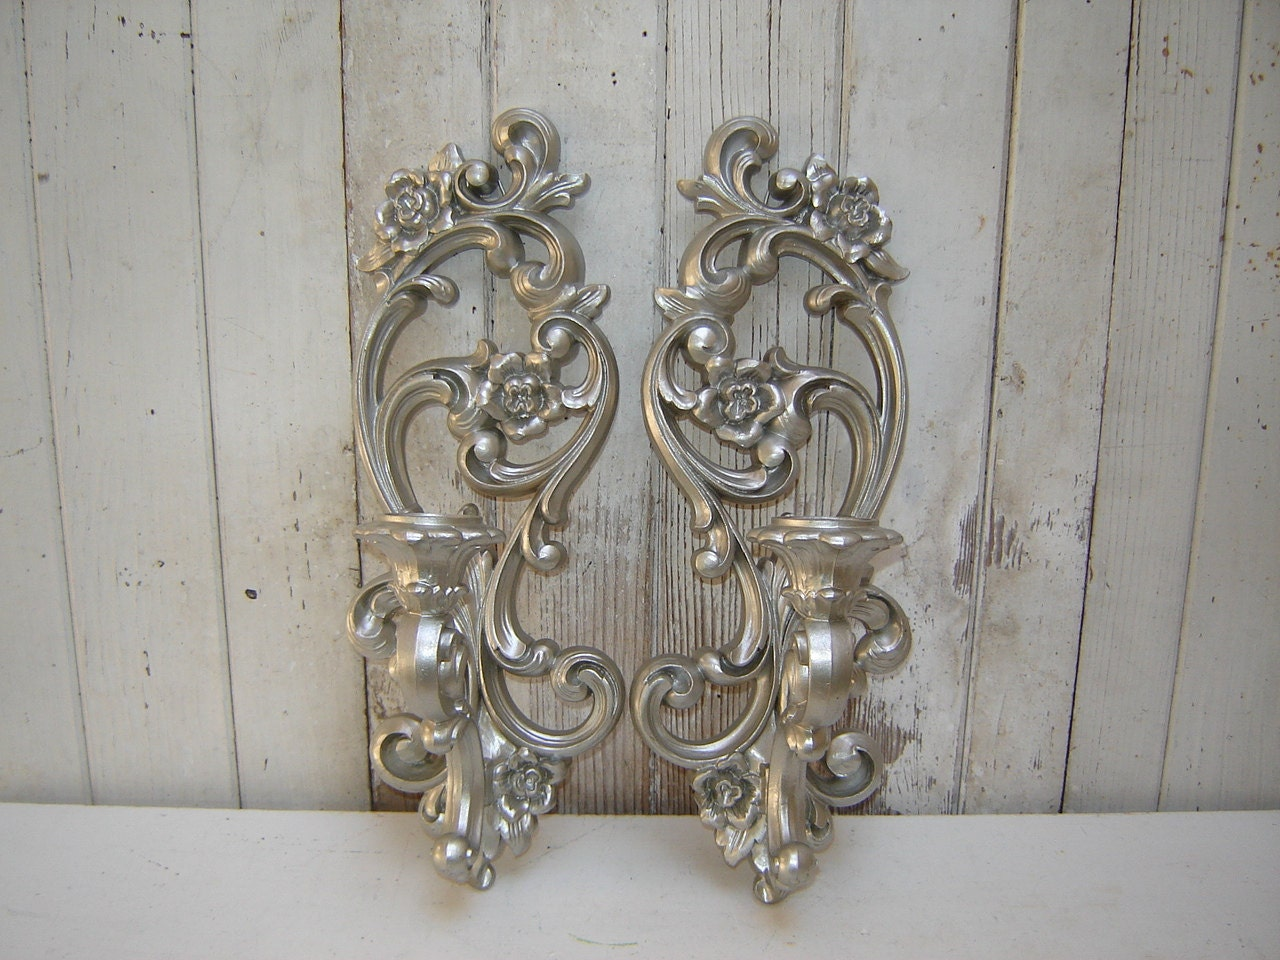 ornate candle wall sconces 2 painted silver candle holders. Black Bedroom Furniture Sets. Home Design Ideas